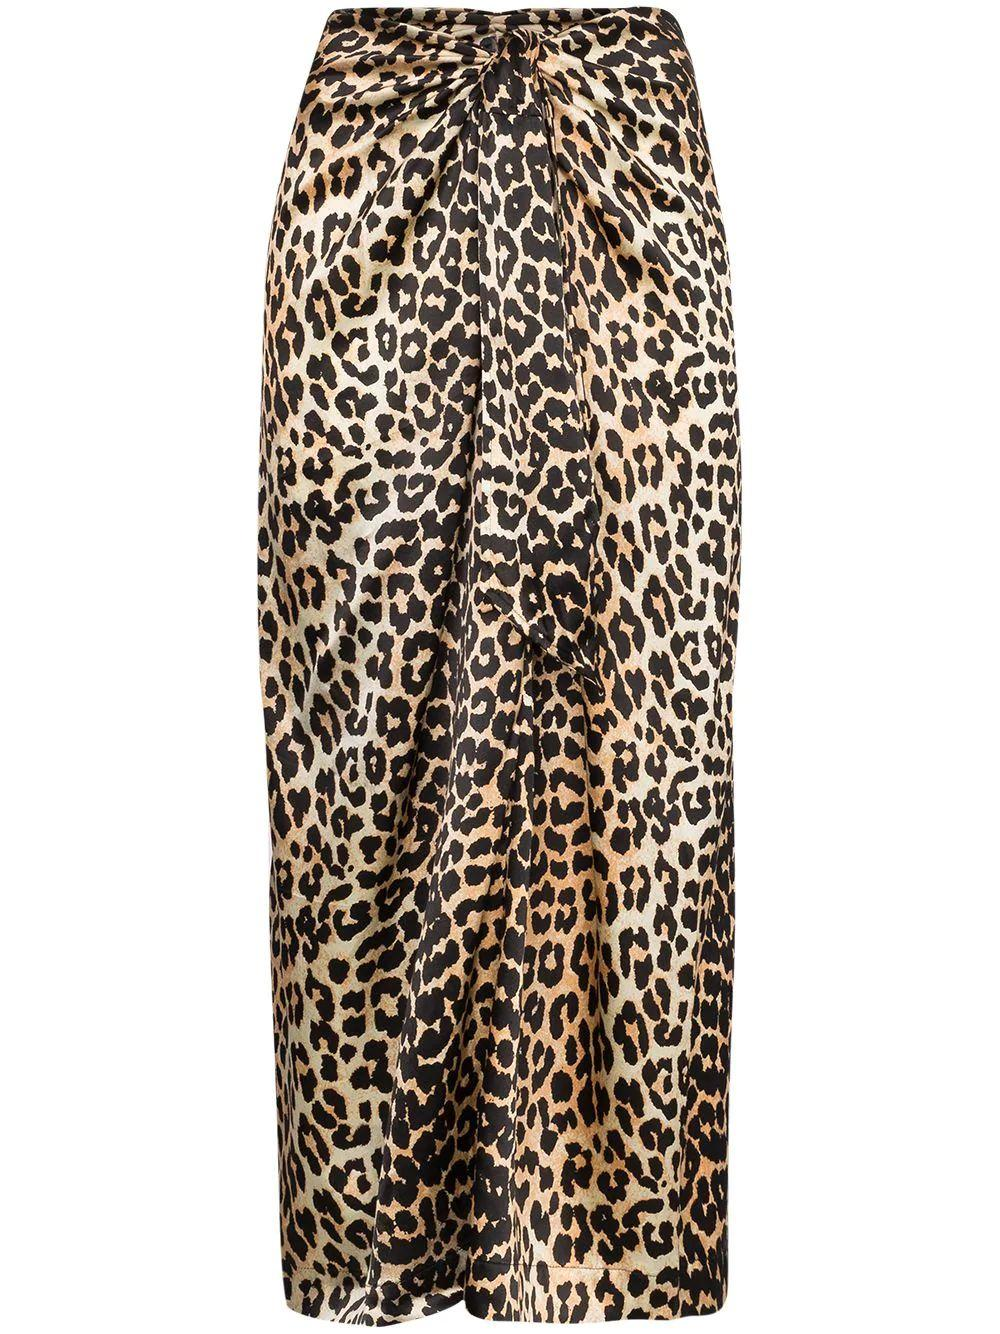 Silk Stretch Leopard Midi Skirt